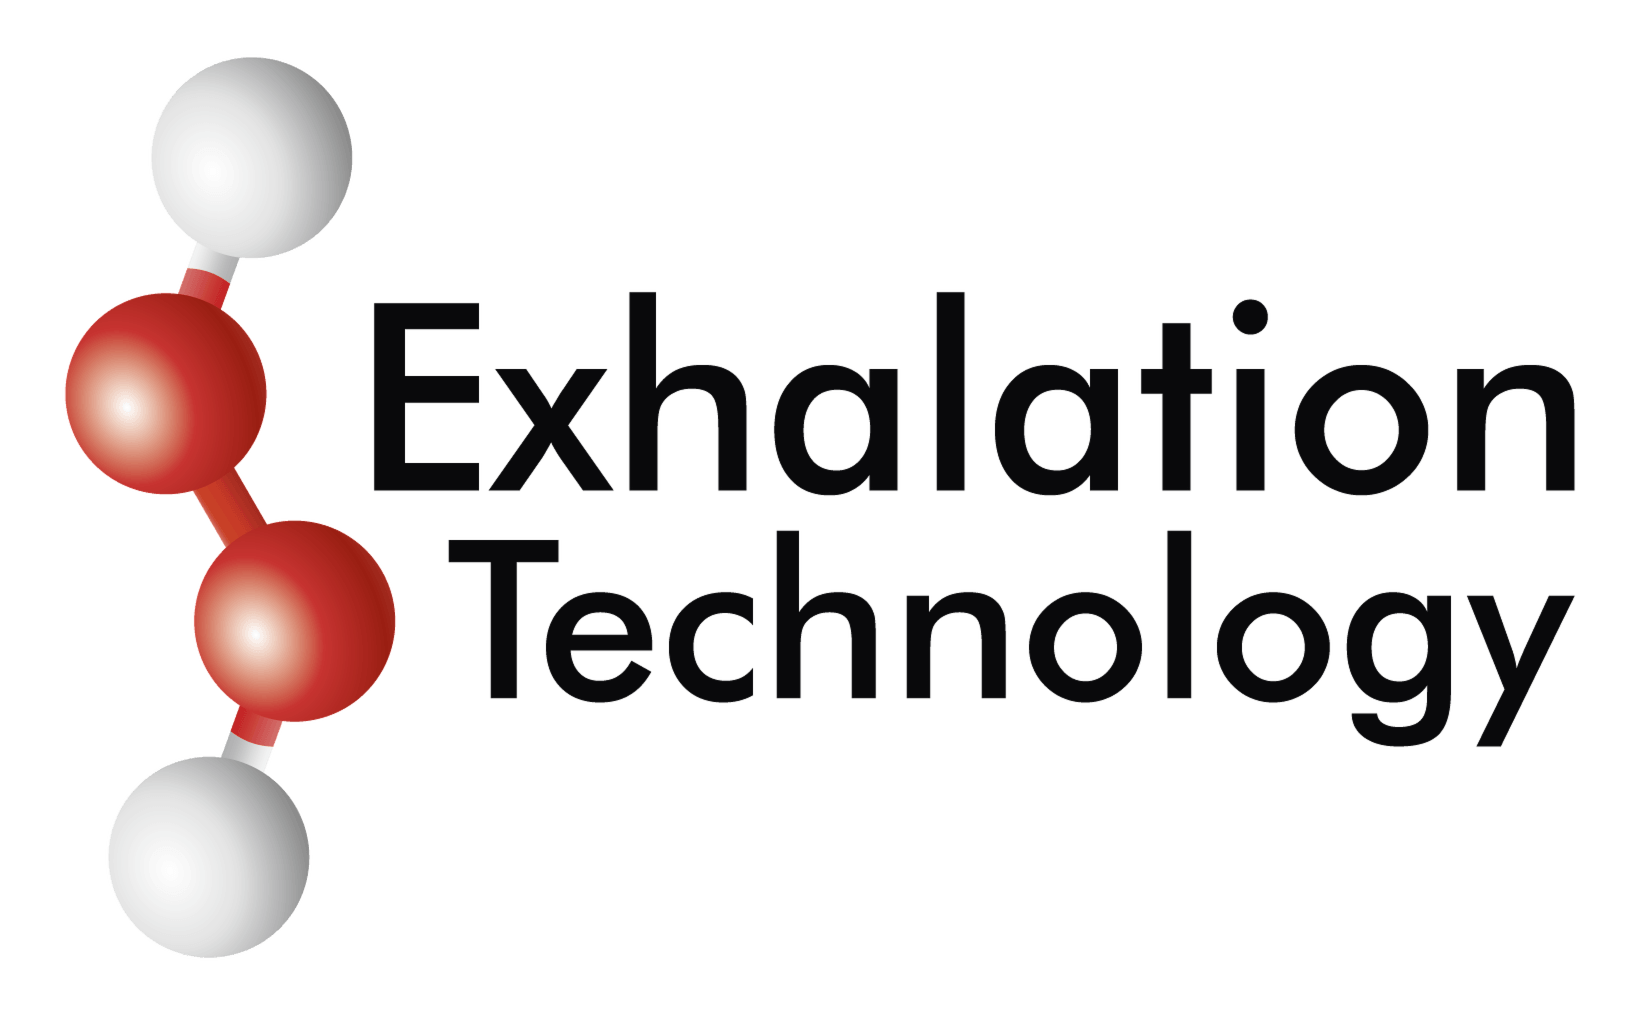 Exhalation Technology Ltd